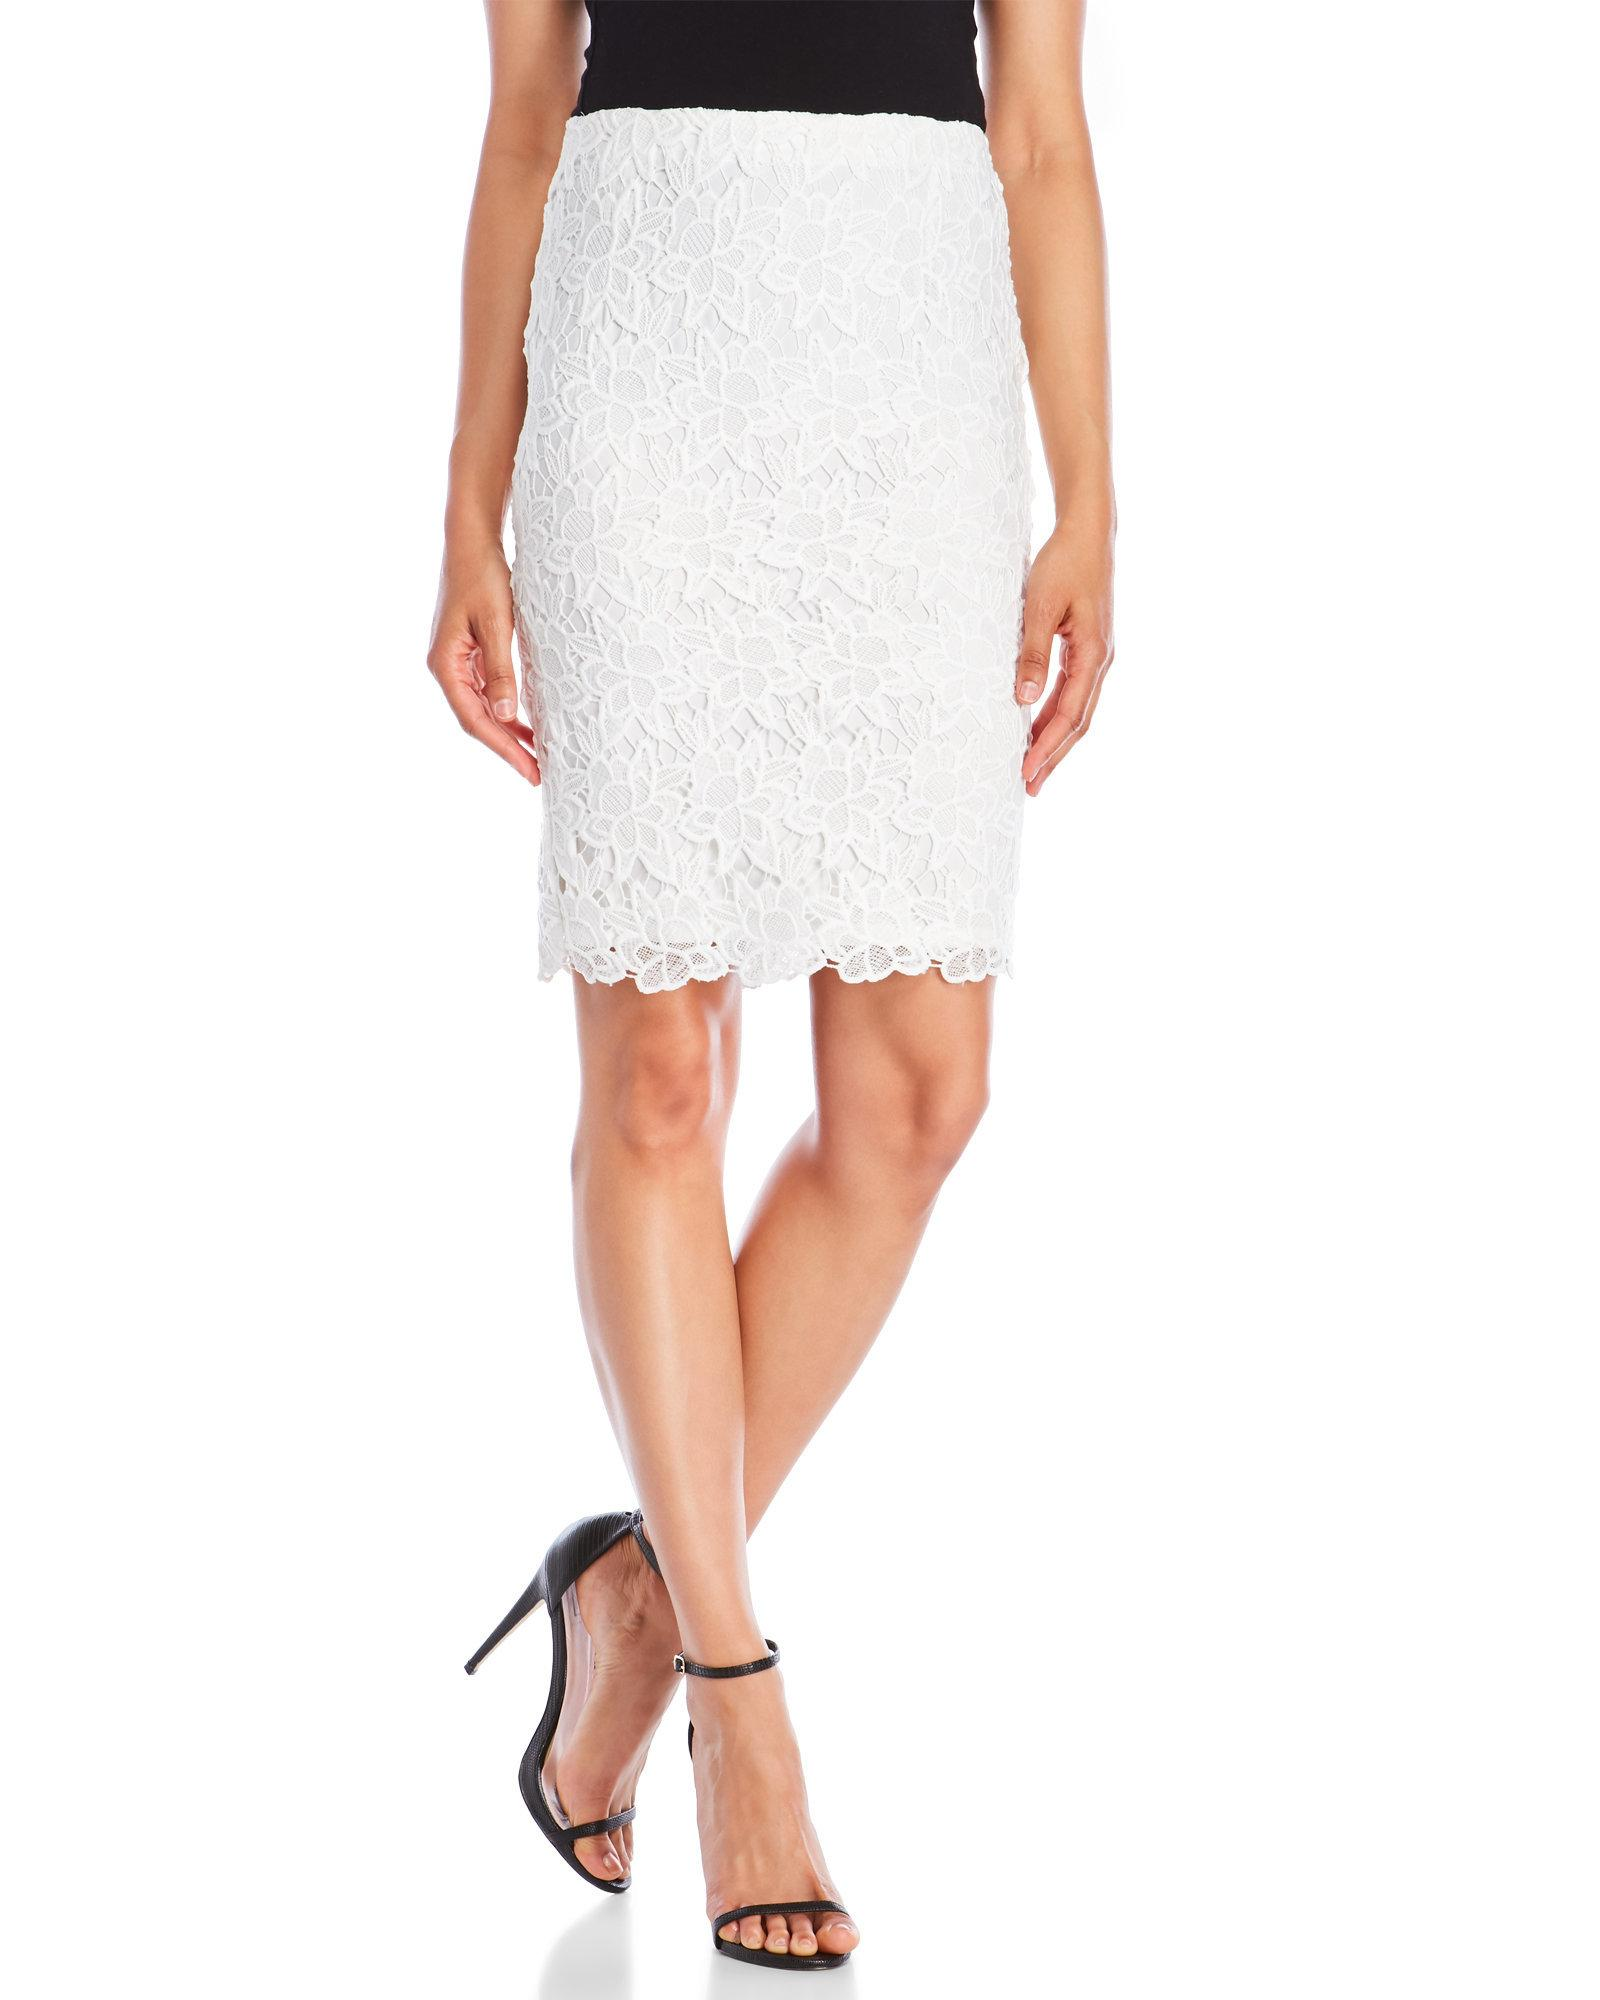 63f5469cdd Lyst - Catherine Malandrino Floral Lace Pencil Skirt in White